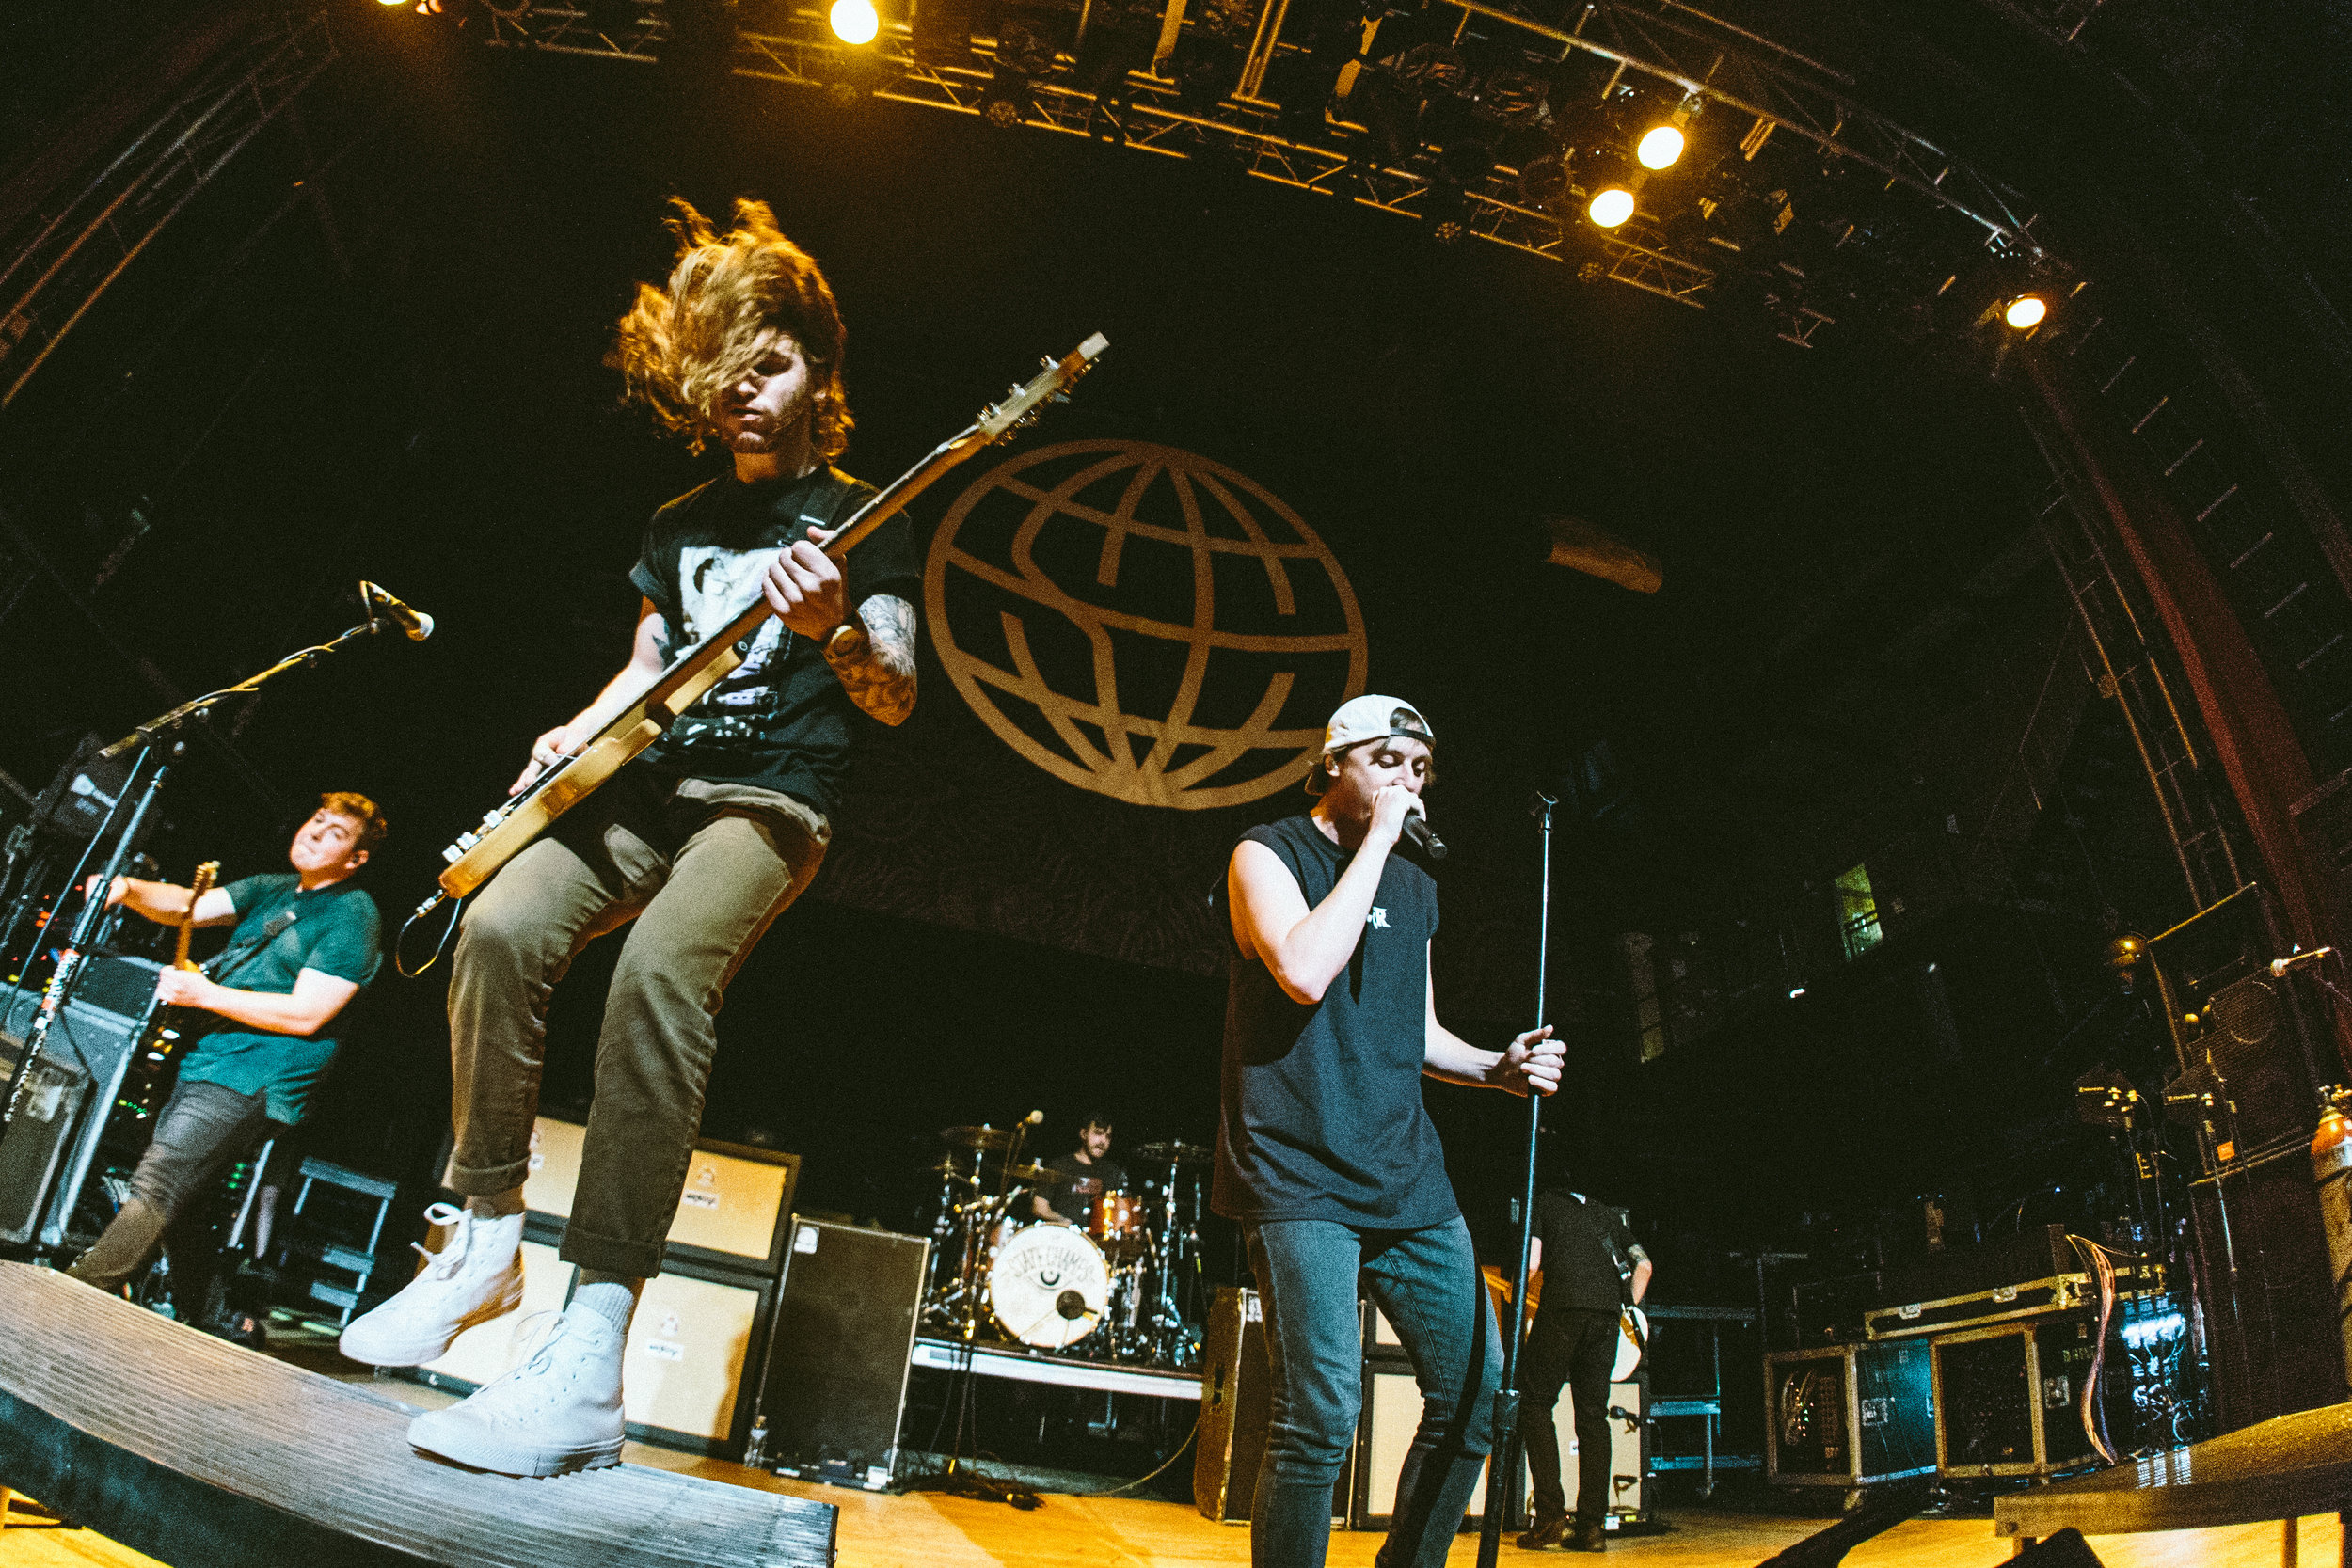 """State Champs - 5.10.2016 // I'd like to take this moment to apologize to the other photographers in this pit that had to endure me singing """"Remedy"""" in its entirety."""